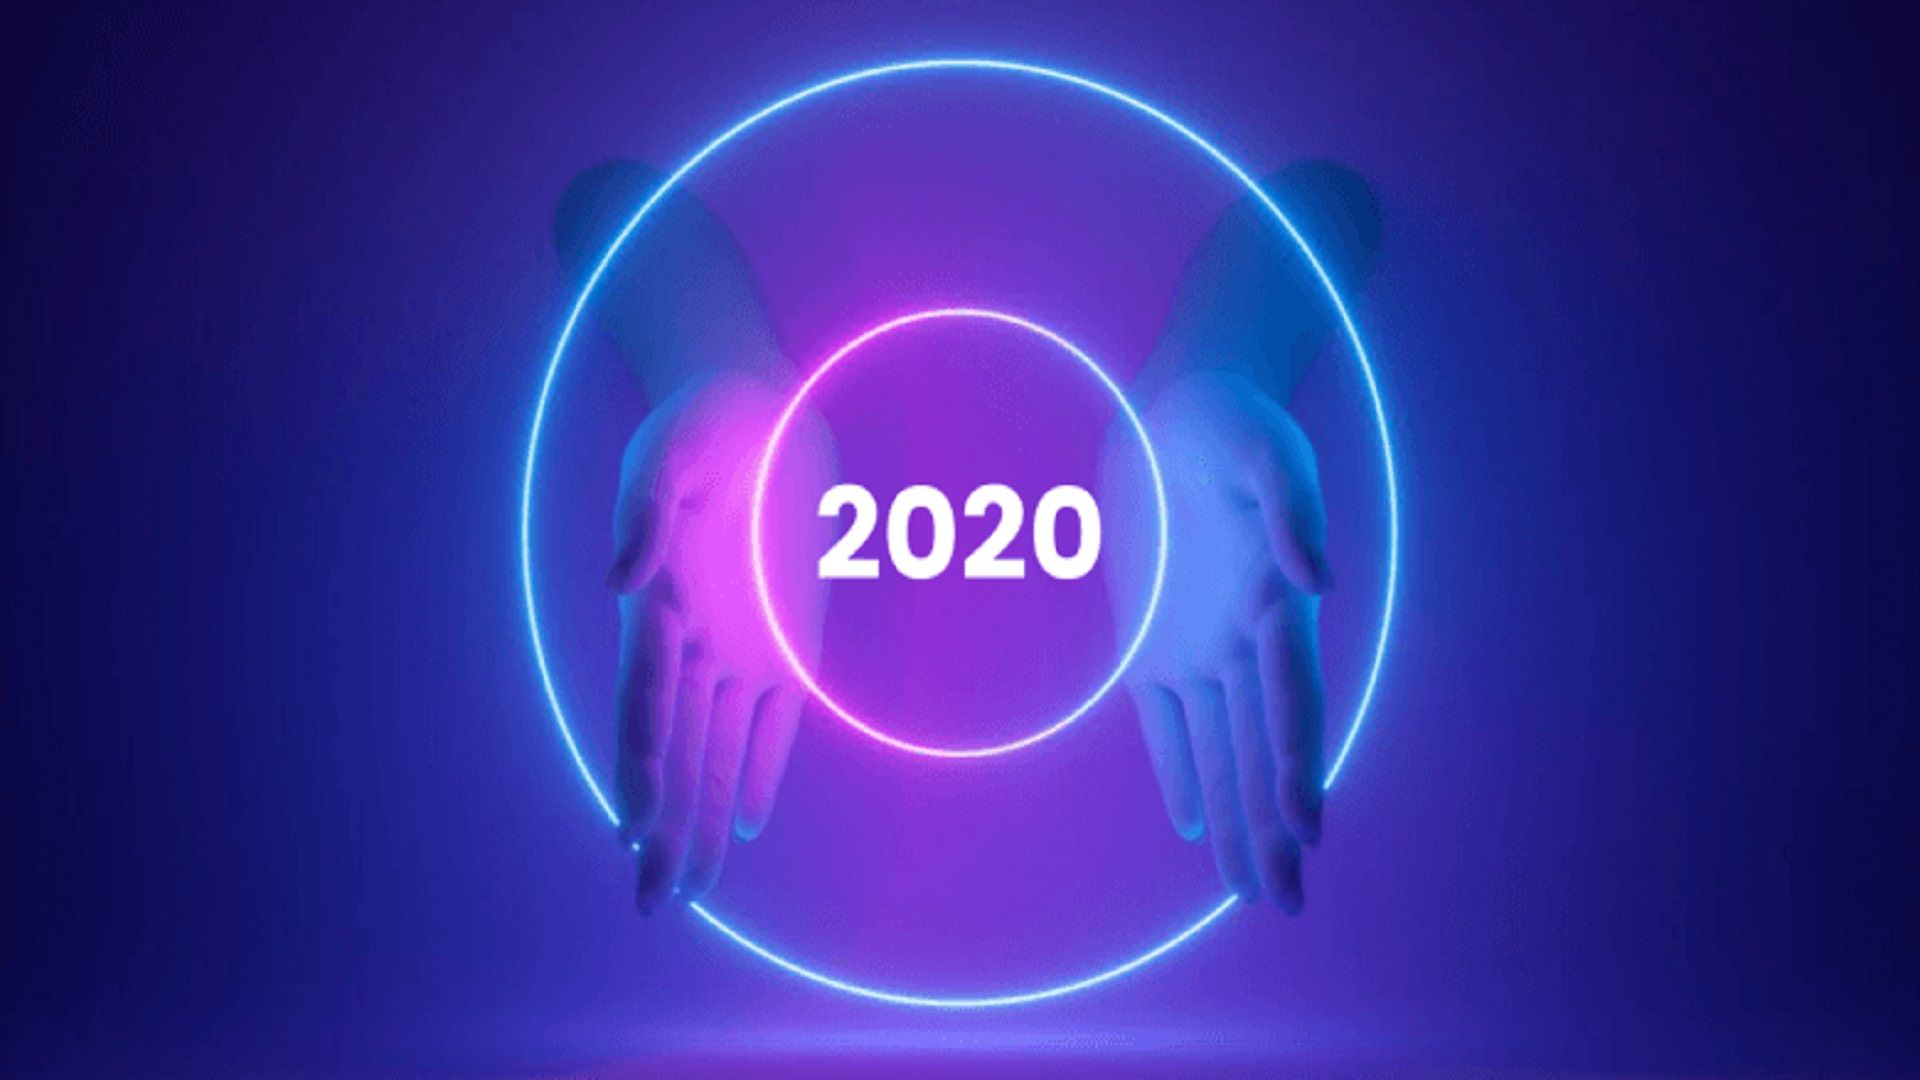 5 Famous Psychics Offer their Visions & Predictions for 2020